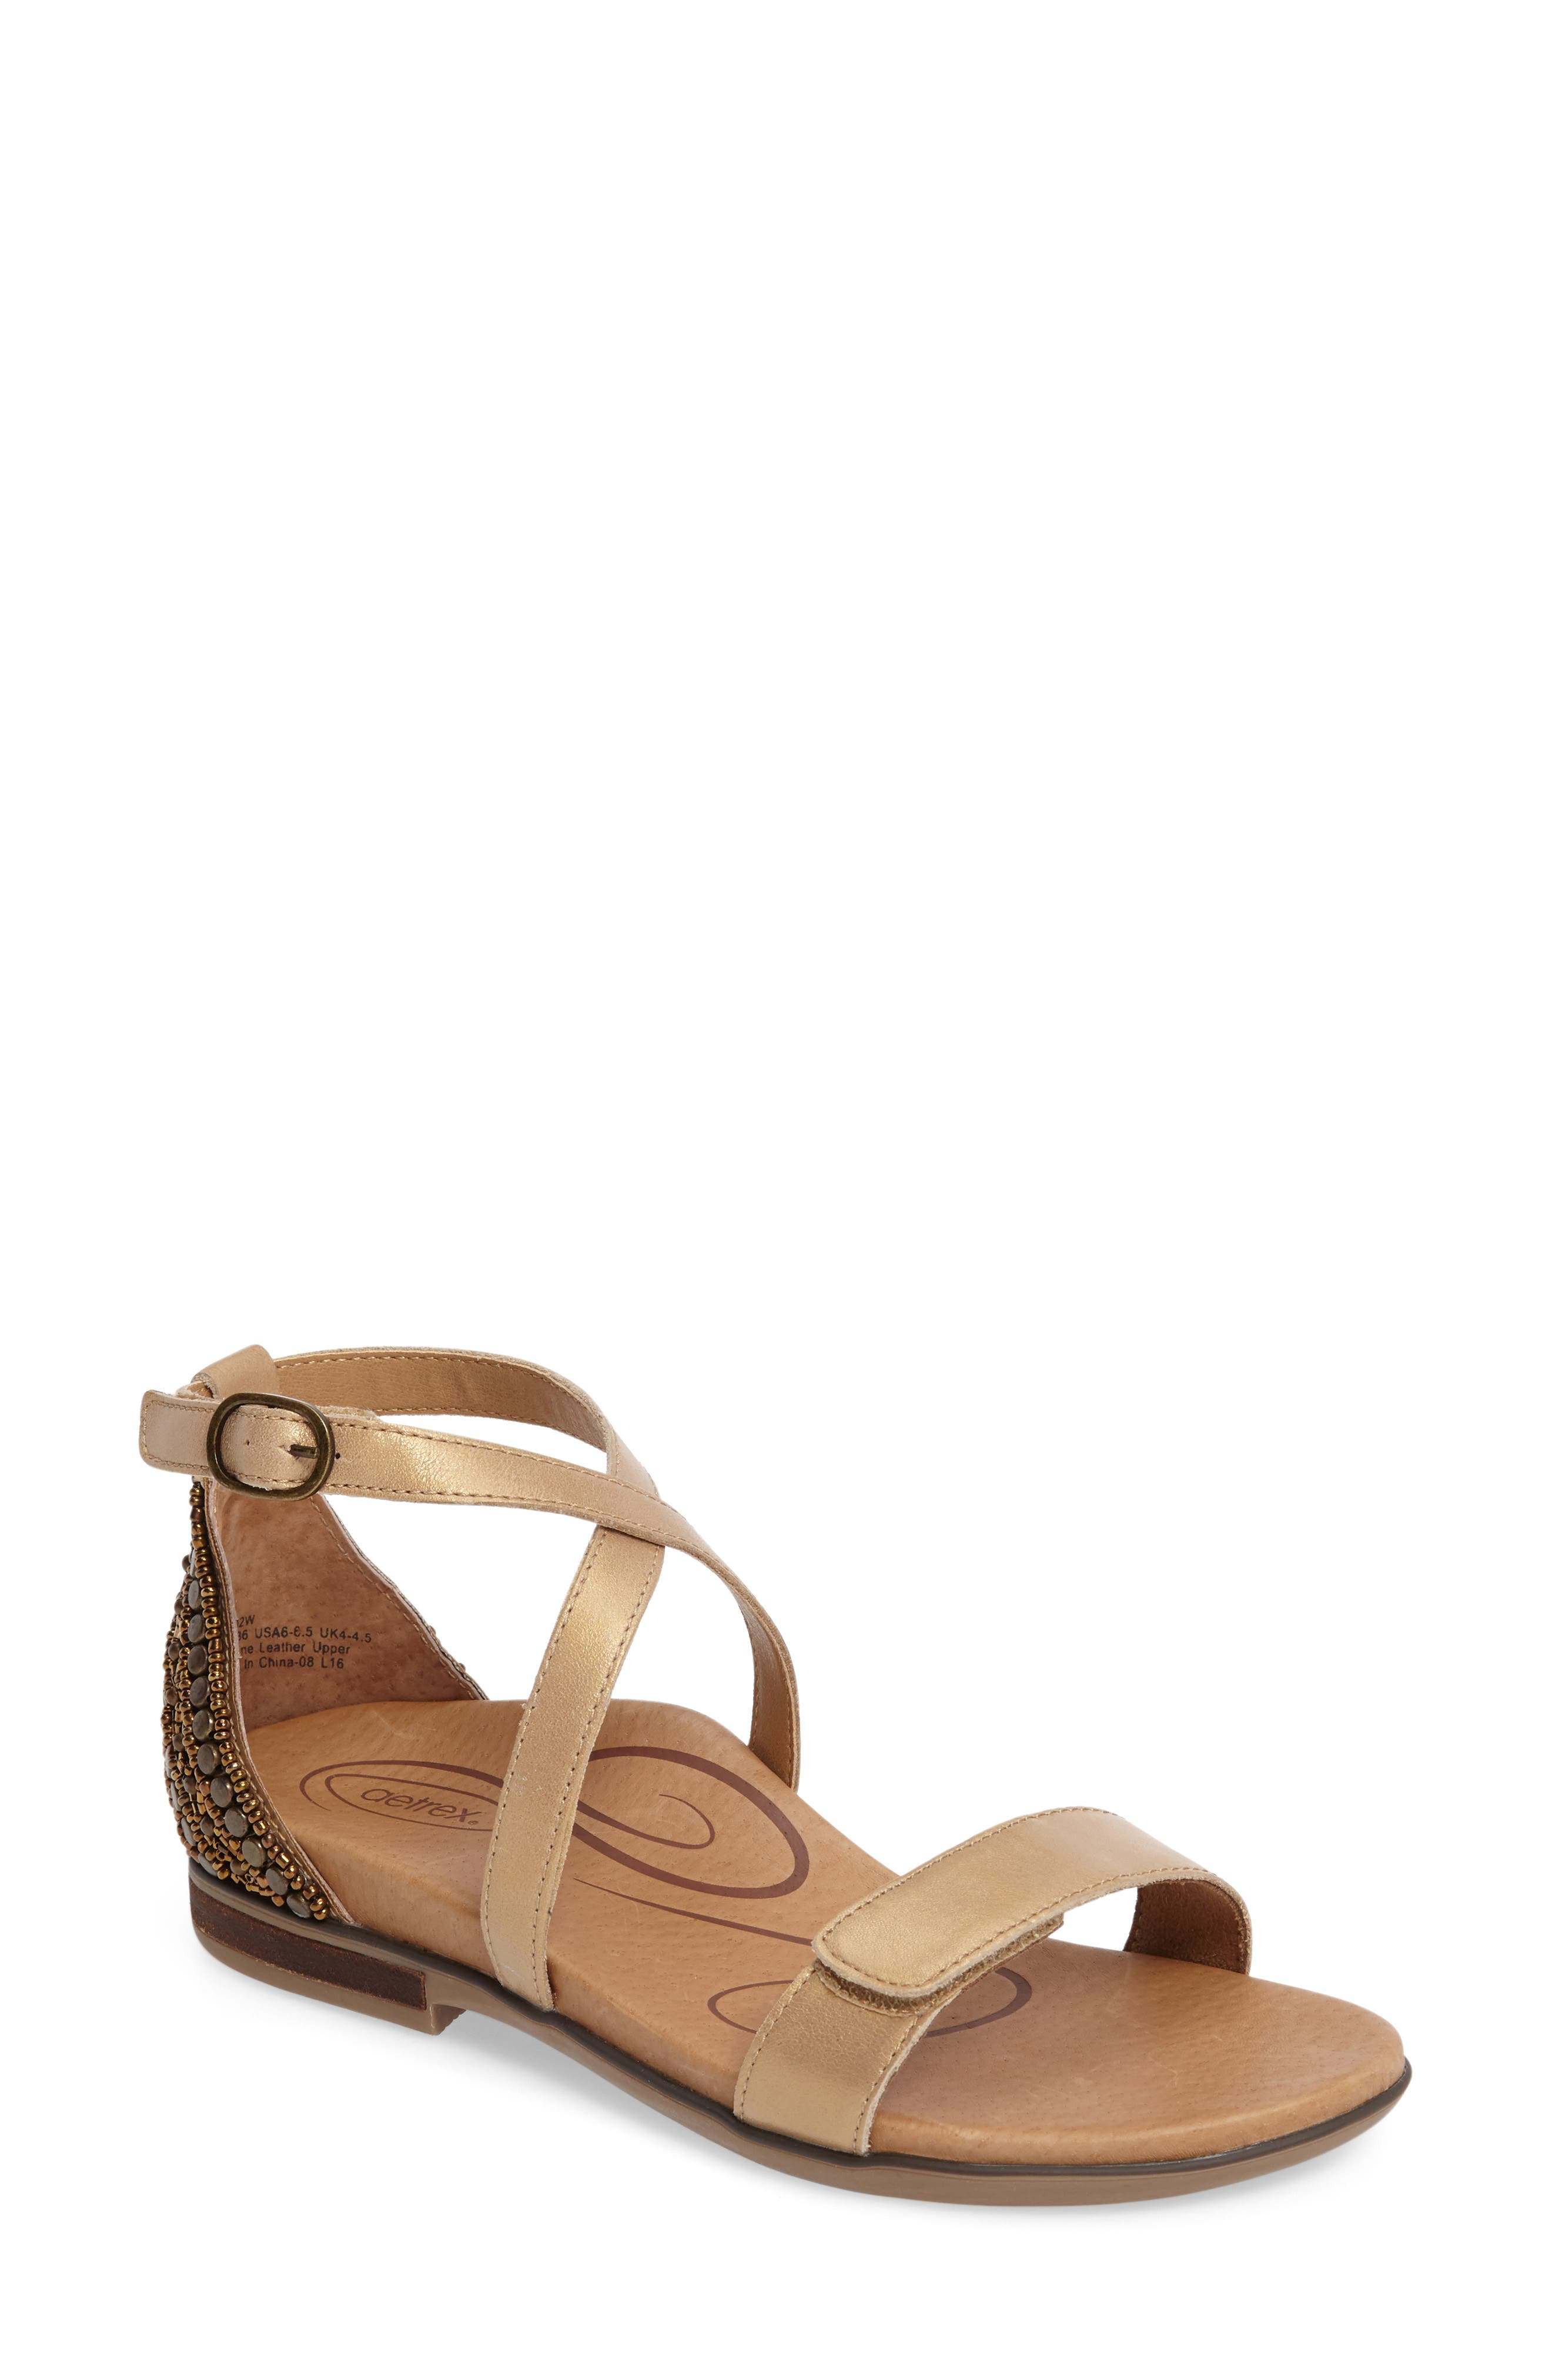 AETREX Brenda Embellished Cross Strap Sandal, Main, color, STONE LEATHER